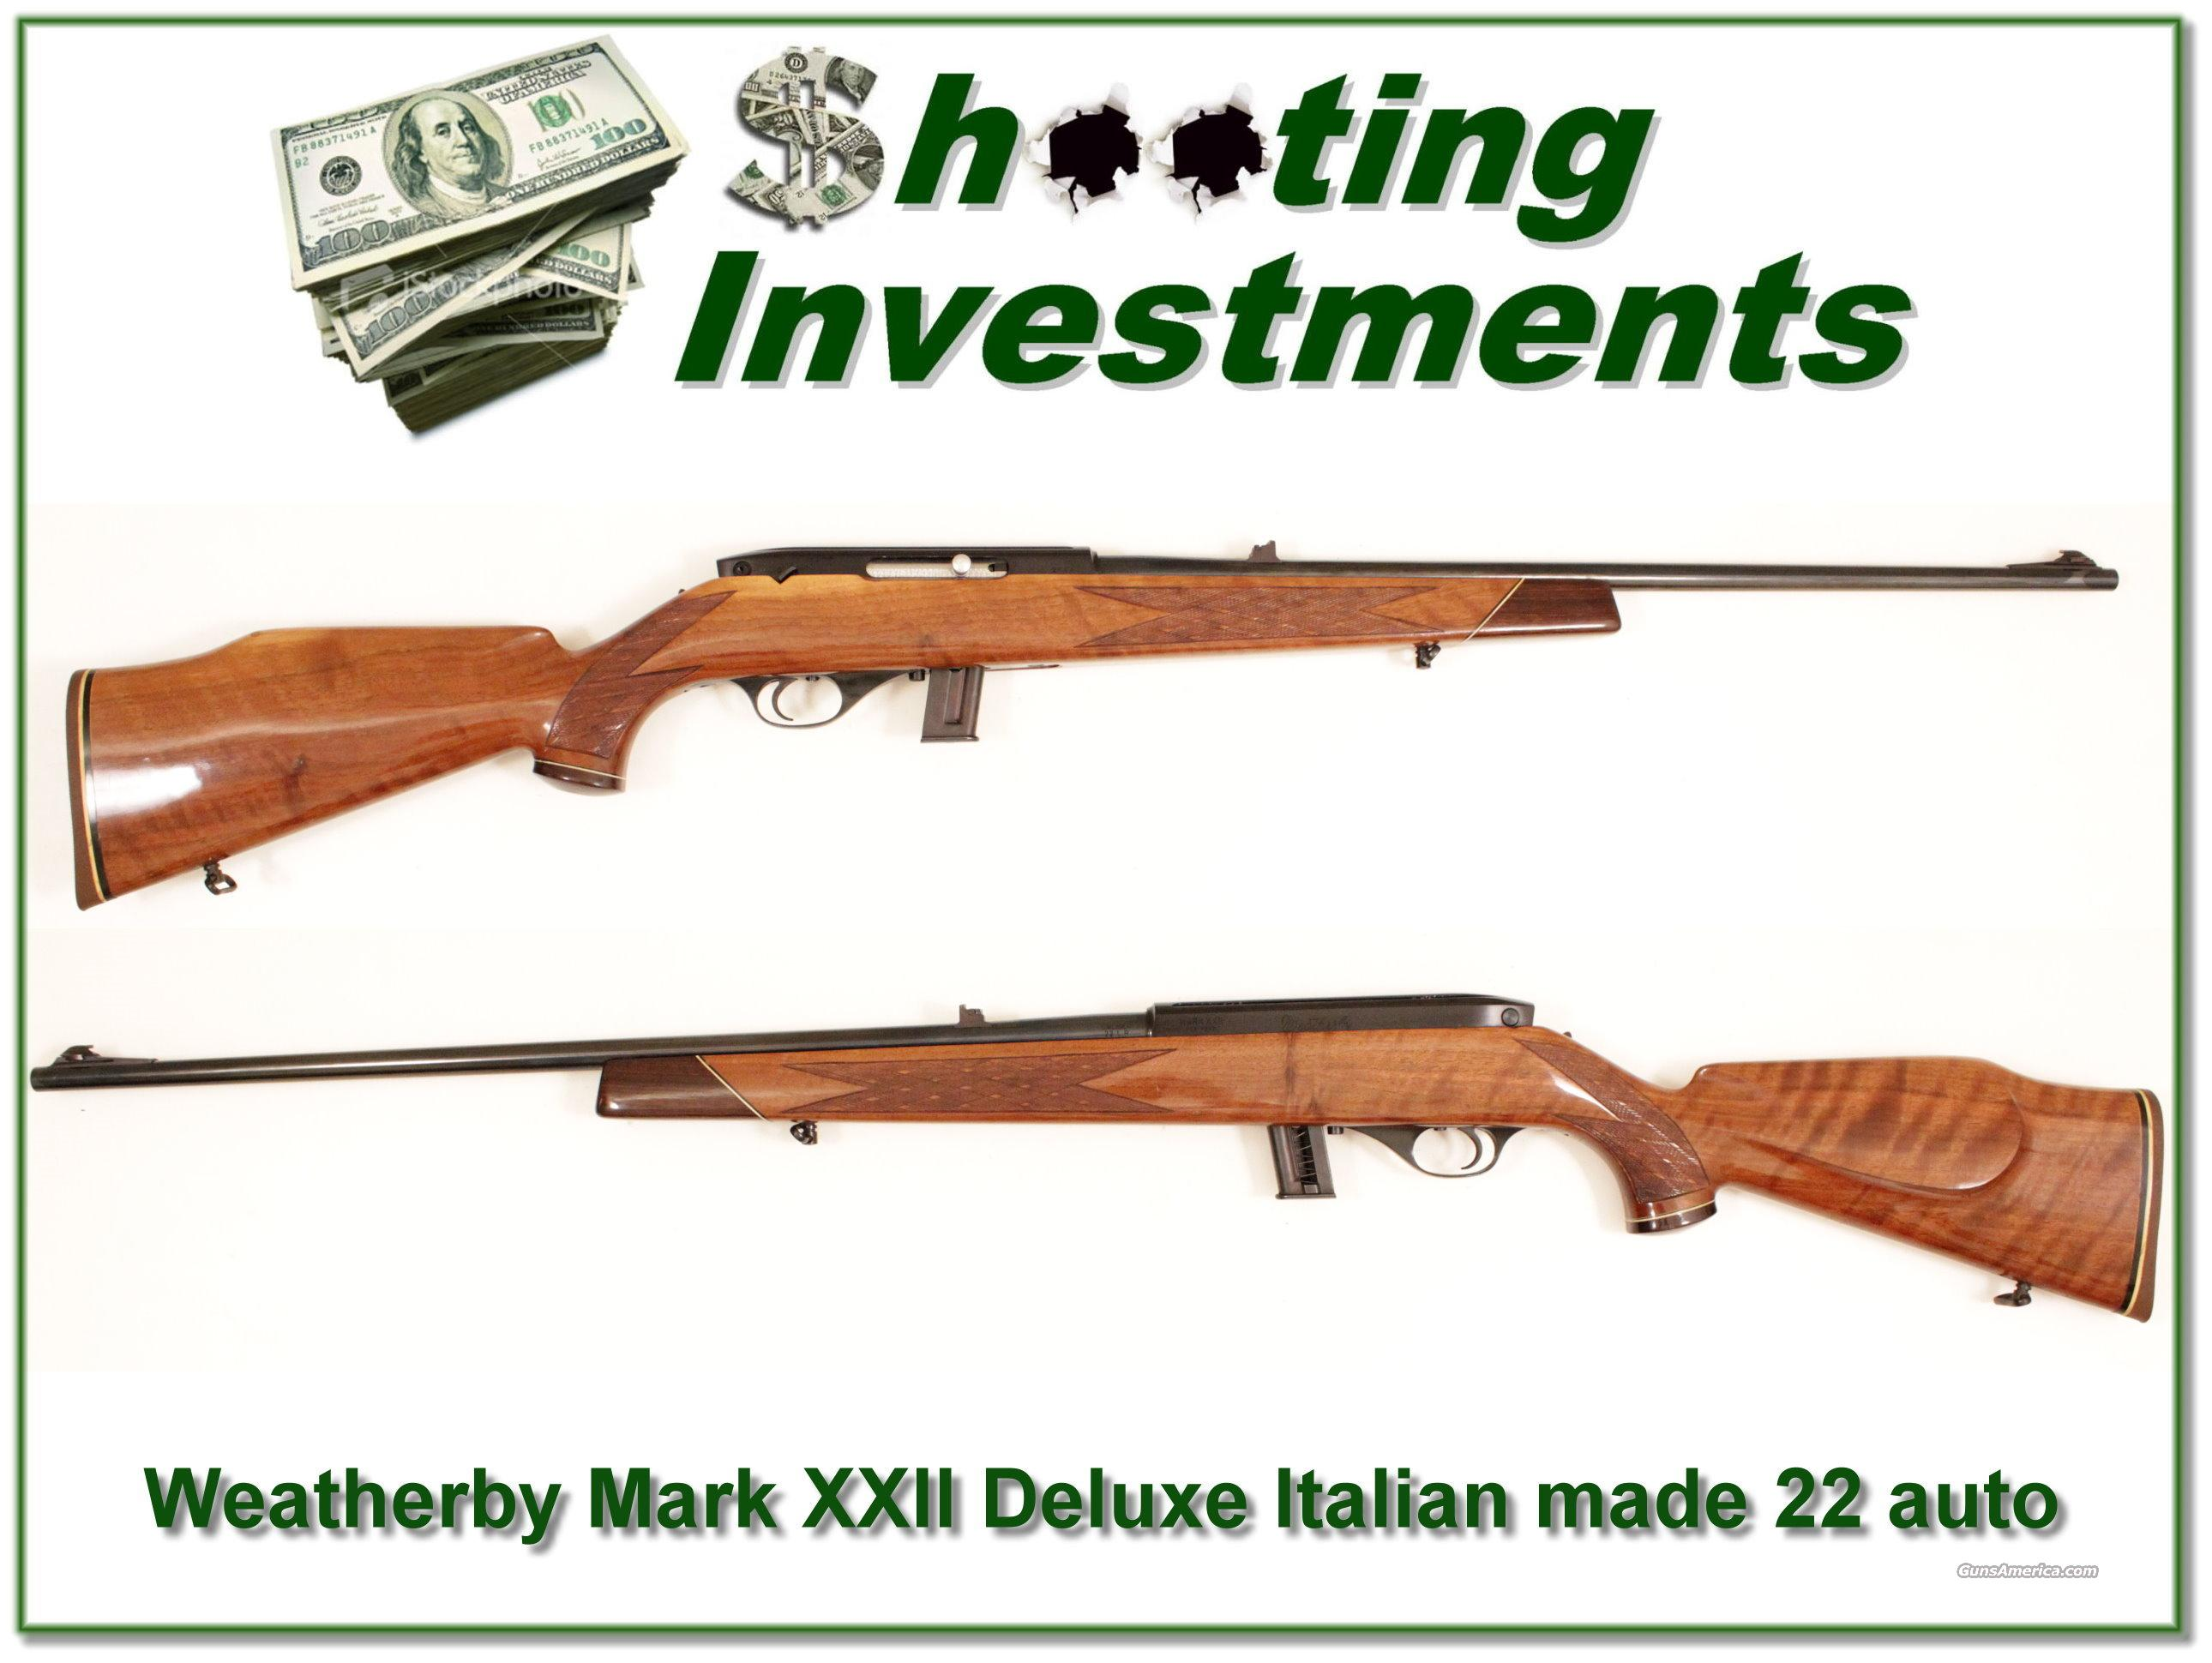 Weatherby Mark XXII Deluxe Italian made 22 auto  Guns > Rifles > Weatherby Rifles > Sporting